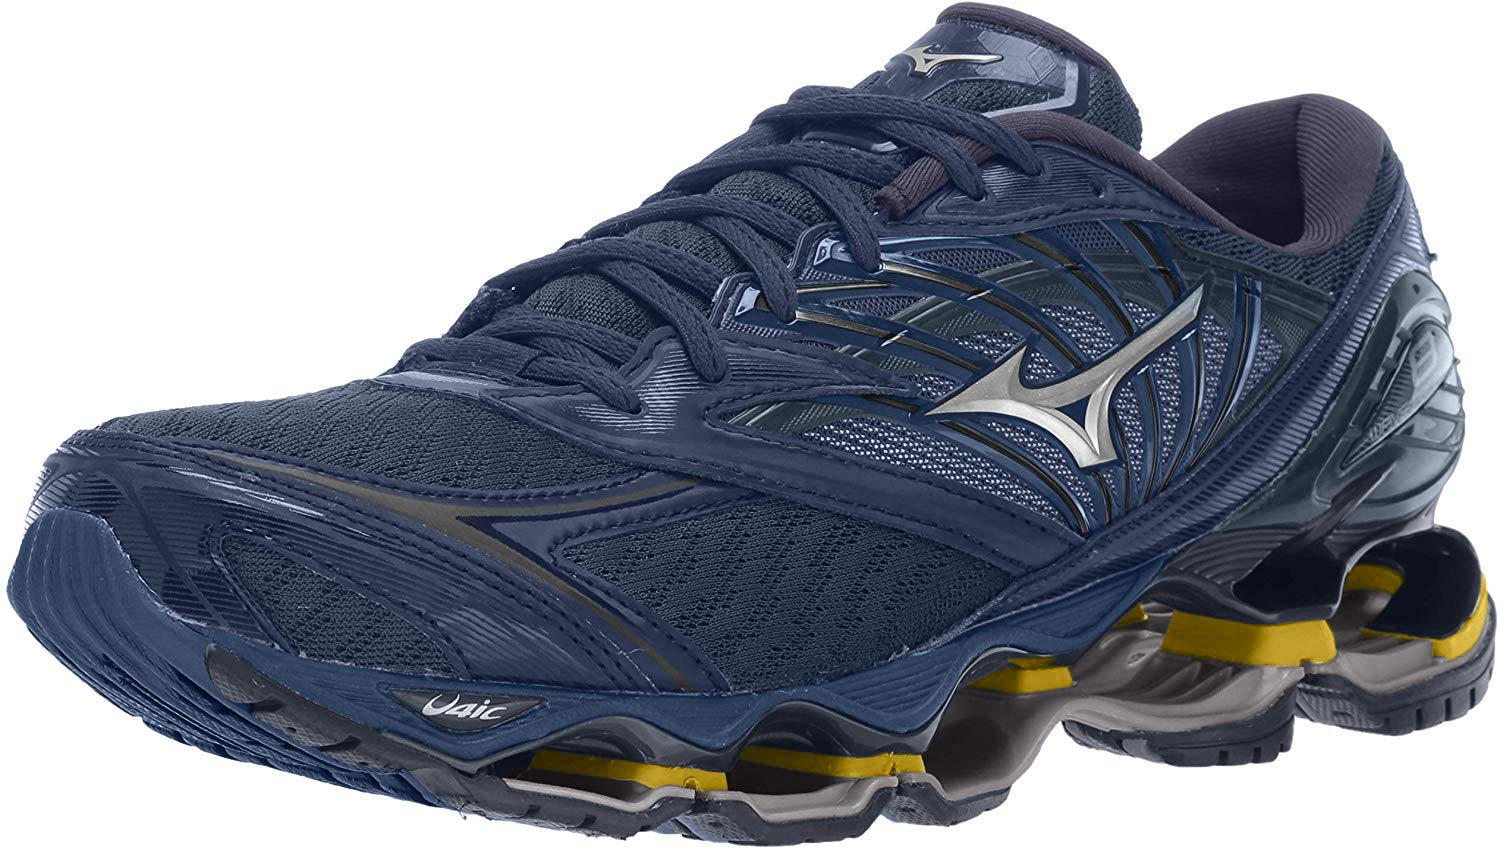 mens mizuno running shoes size 9.5 equivalent high graphic laptop